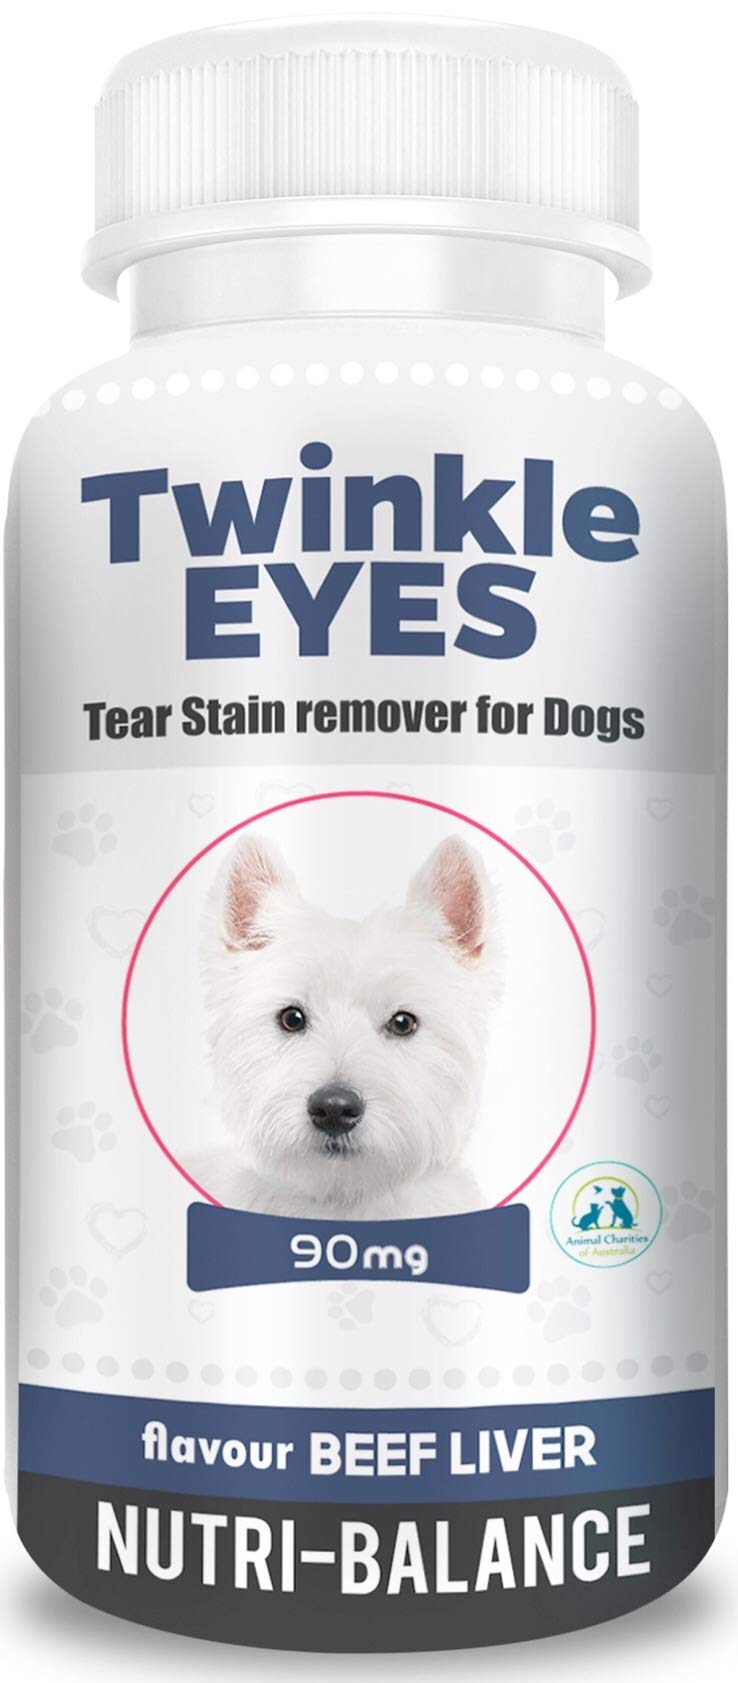 Twinkle Eyes Tear Stain Remover for Dogs - Beef Liver 90g